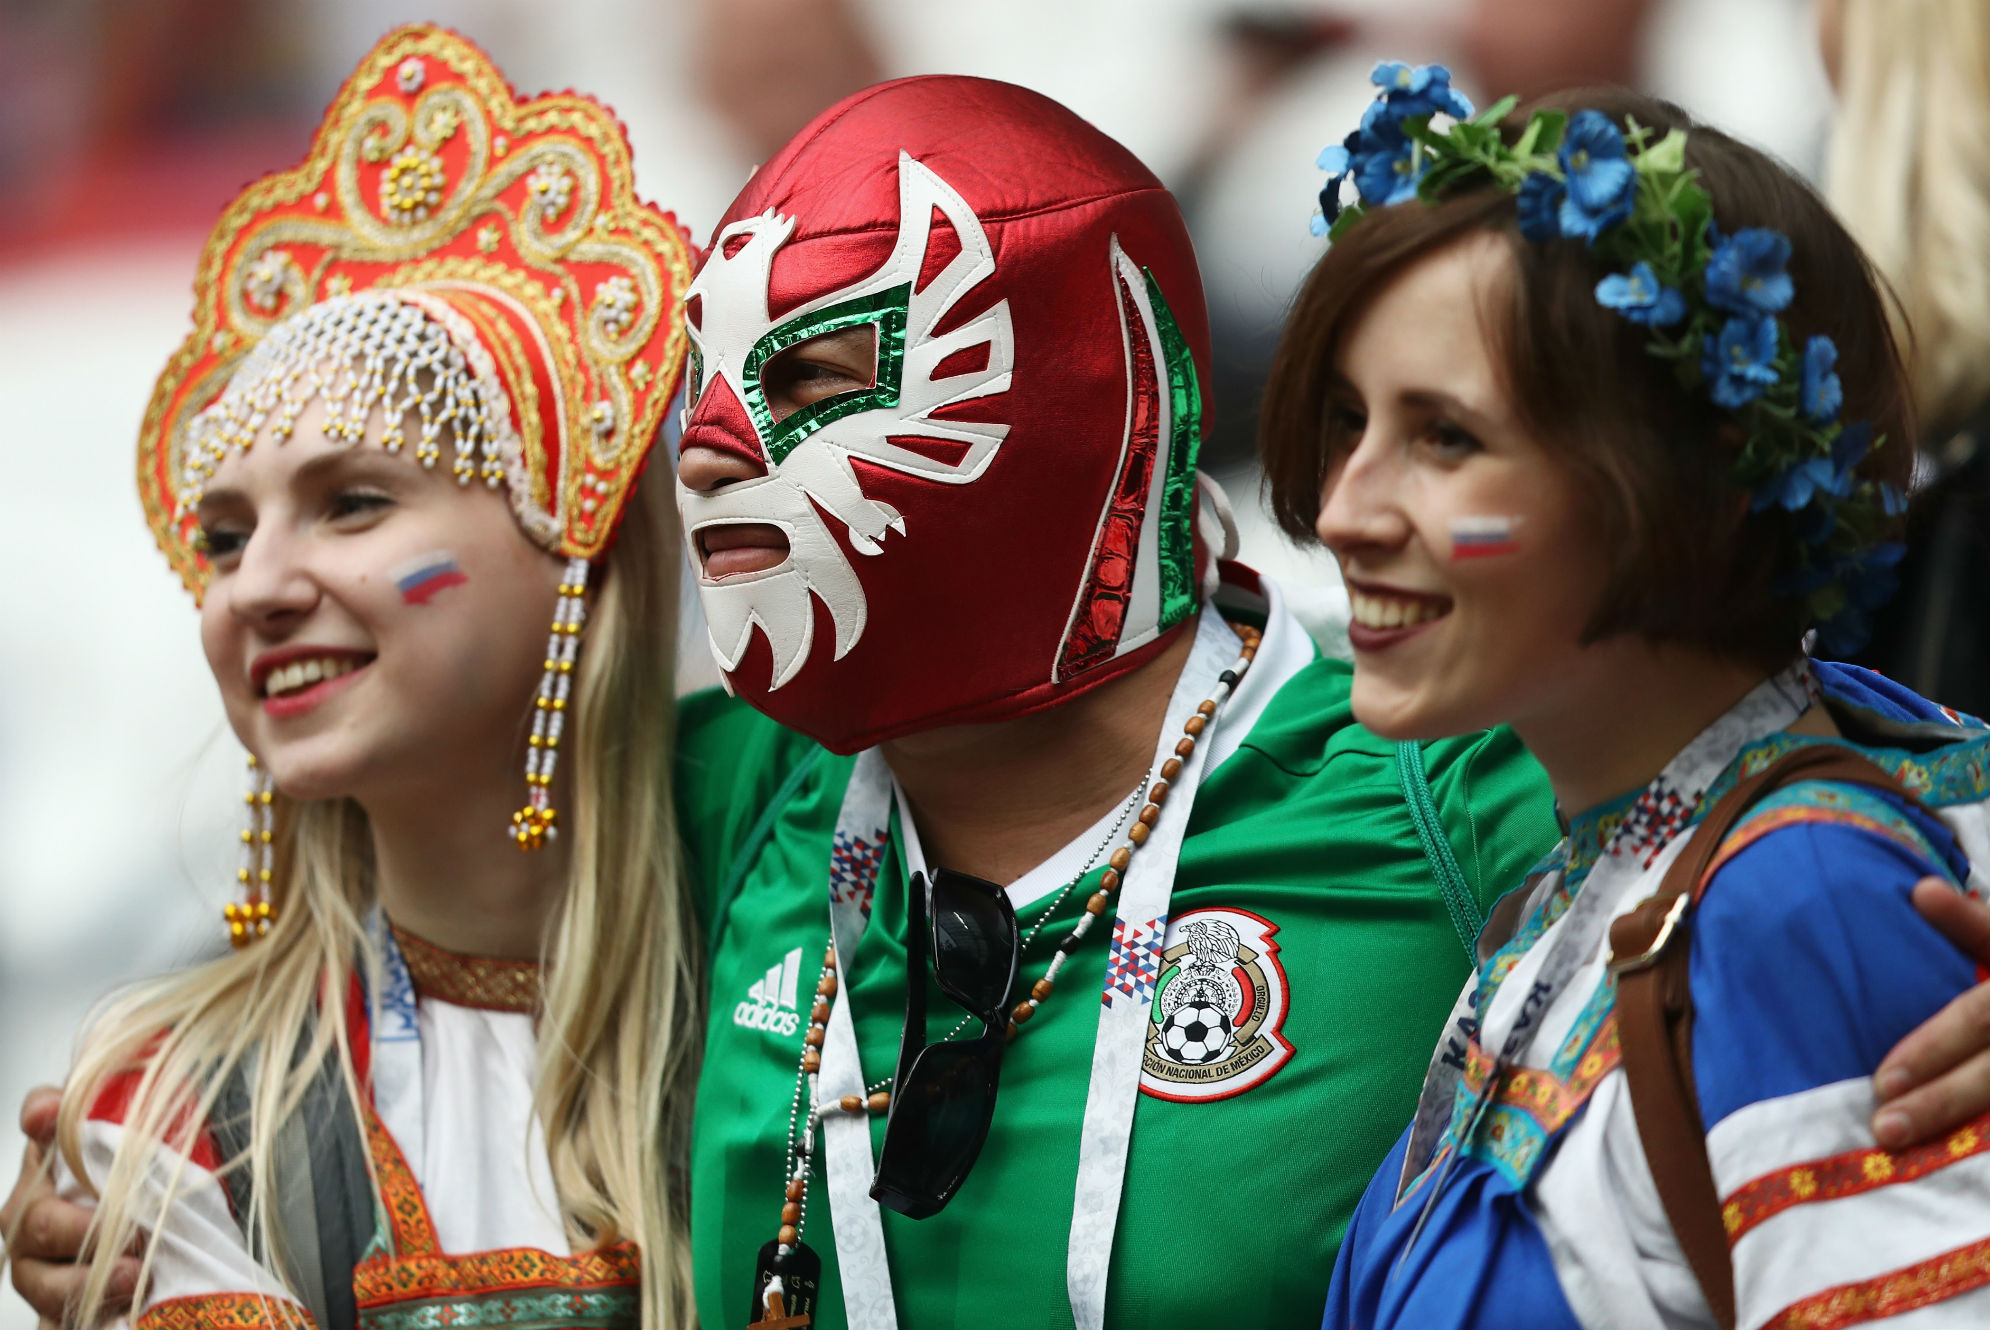 Russia Mexico fans